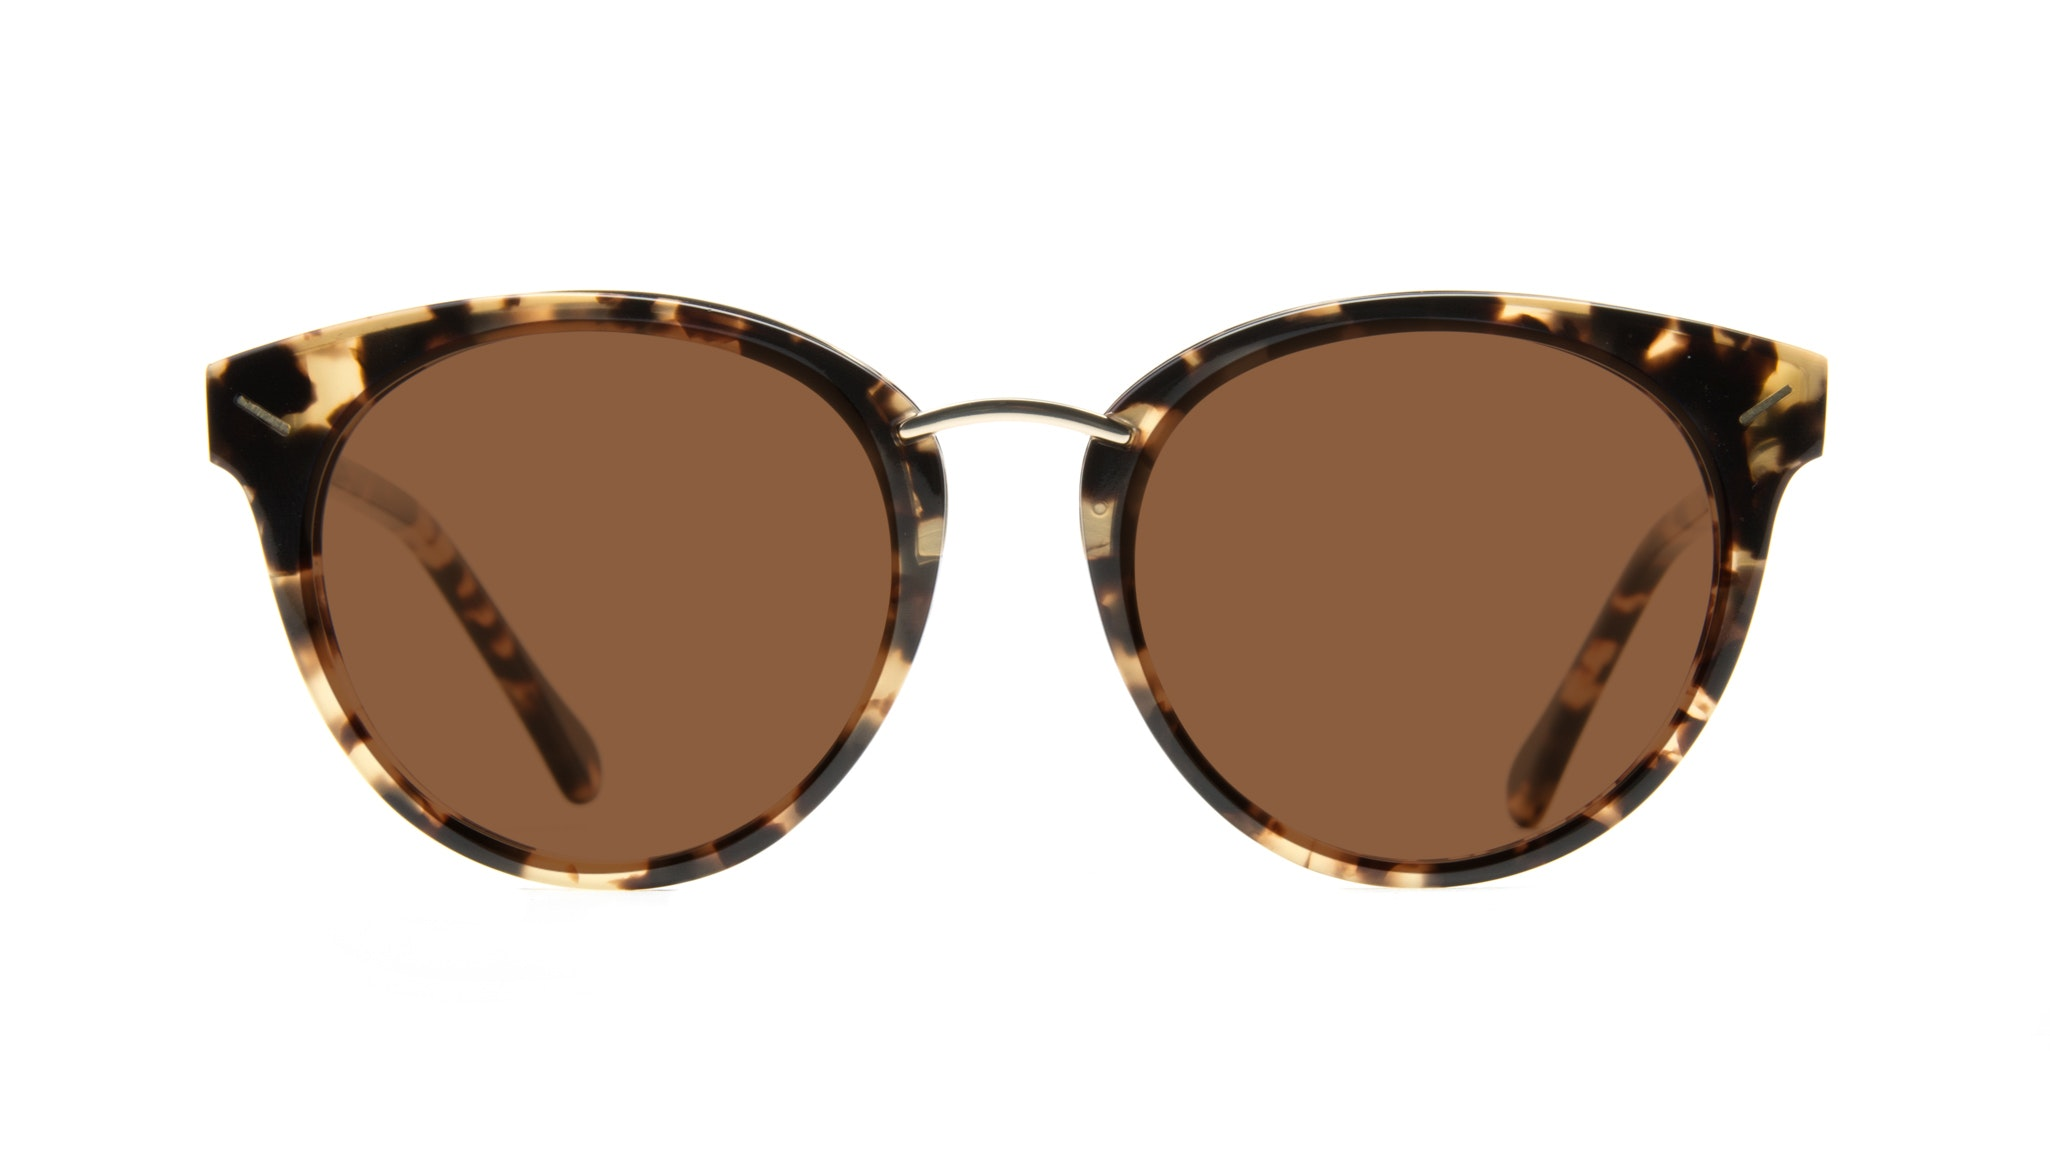 Affordable Fashion Glasses Round Sunglasses Women Element Gold Tort Front